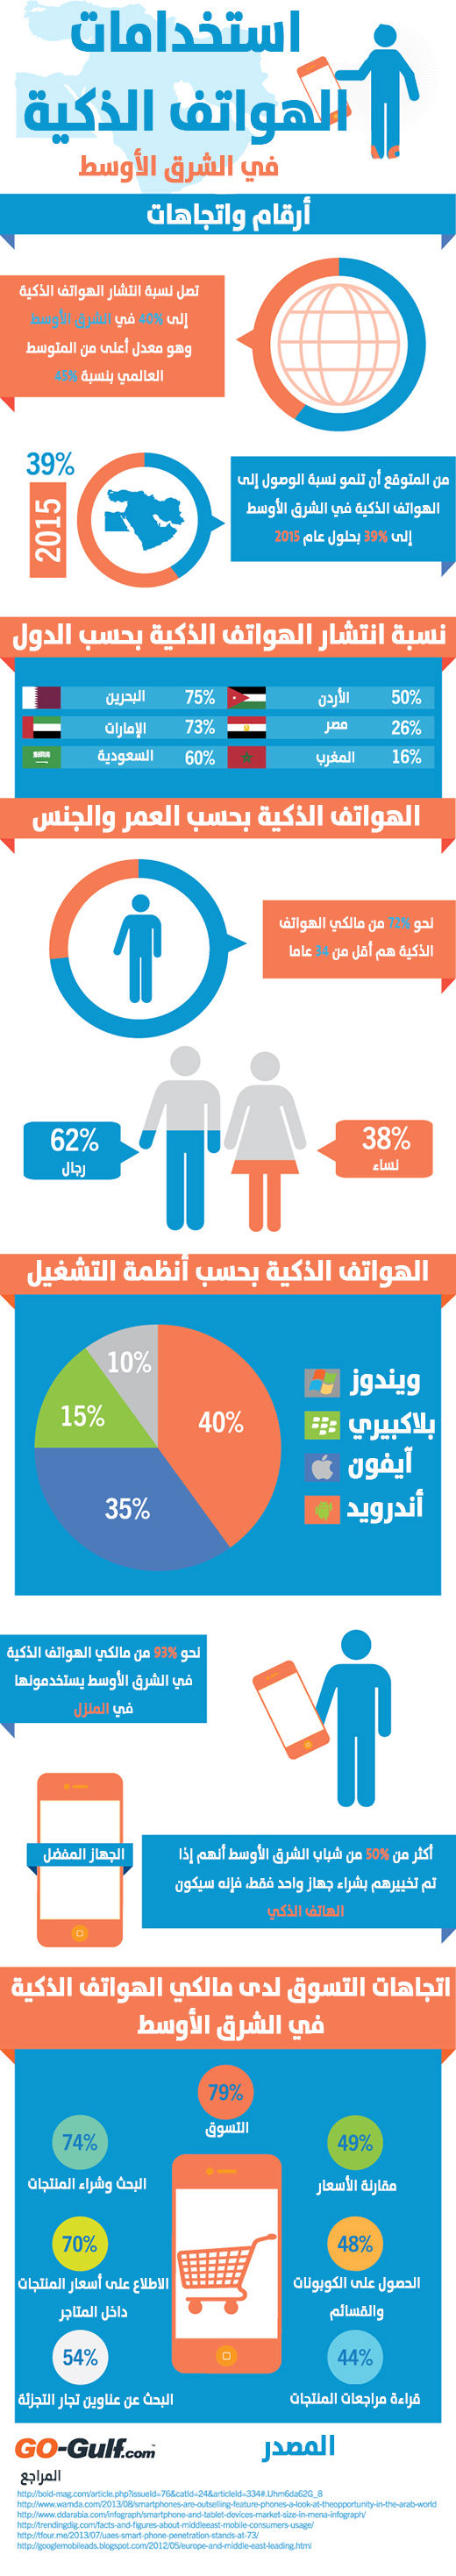 smartphone-middle-east-arabic